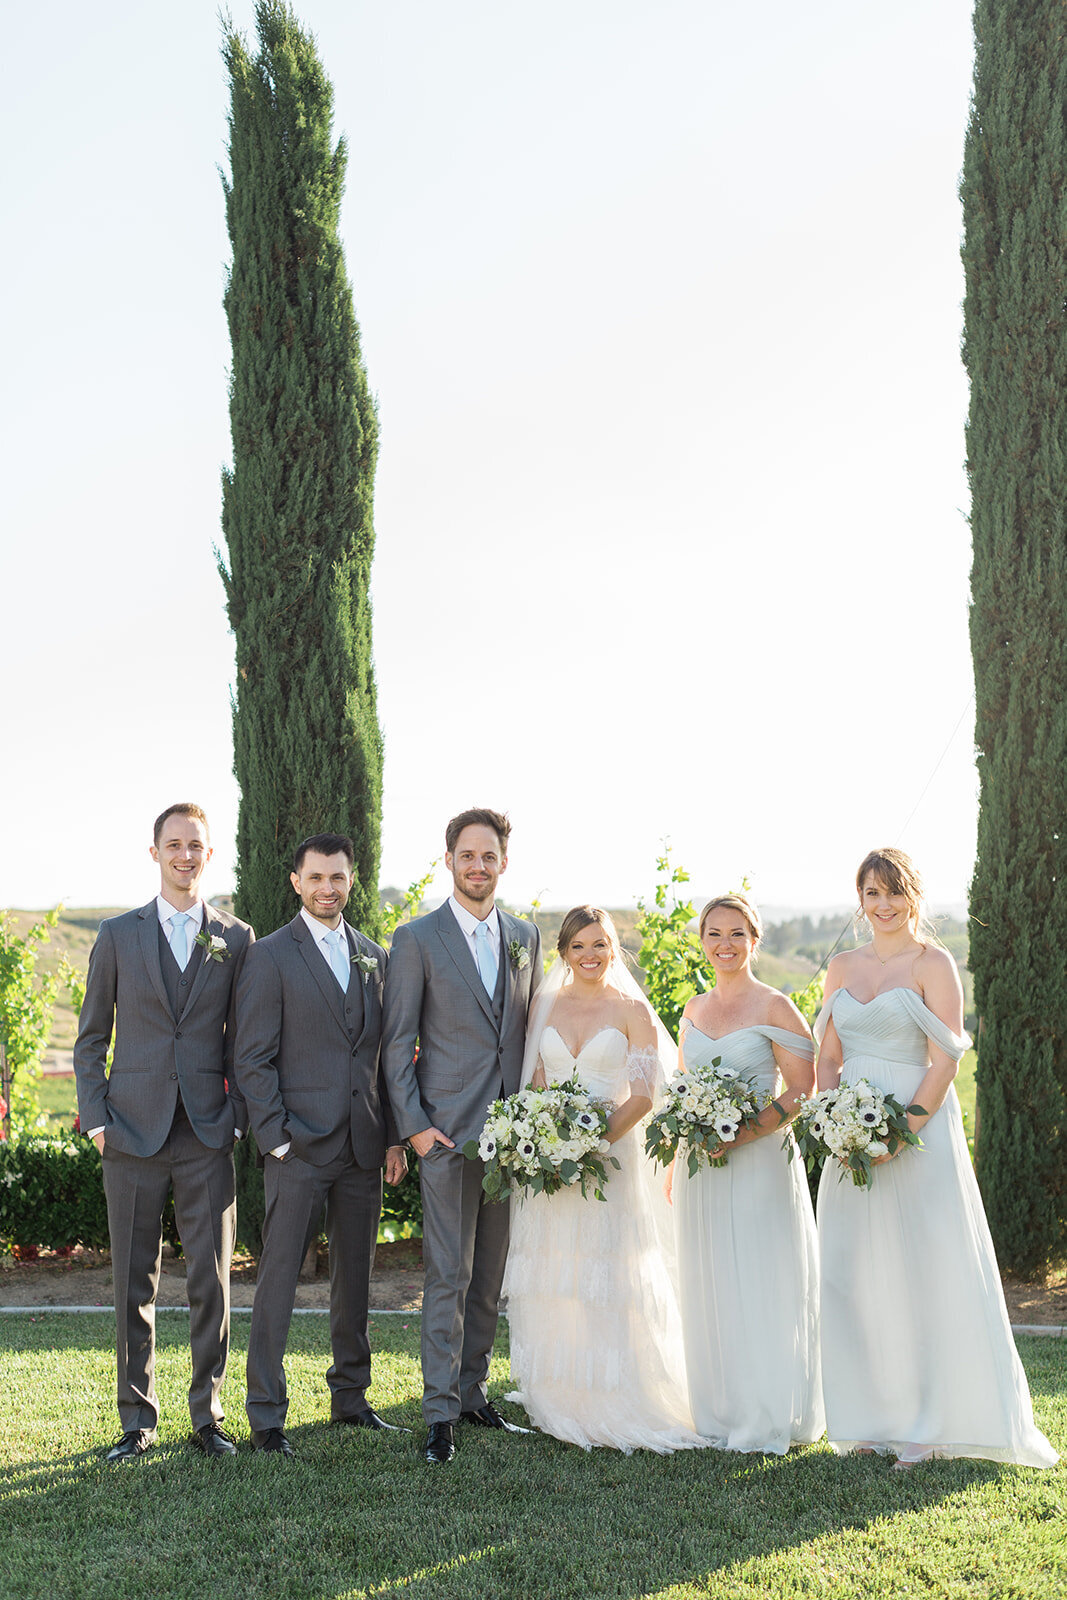 Avensole-Winery-Wedding-Photographer-48